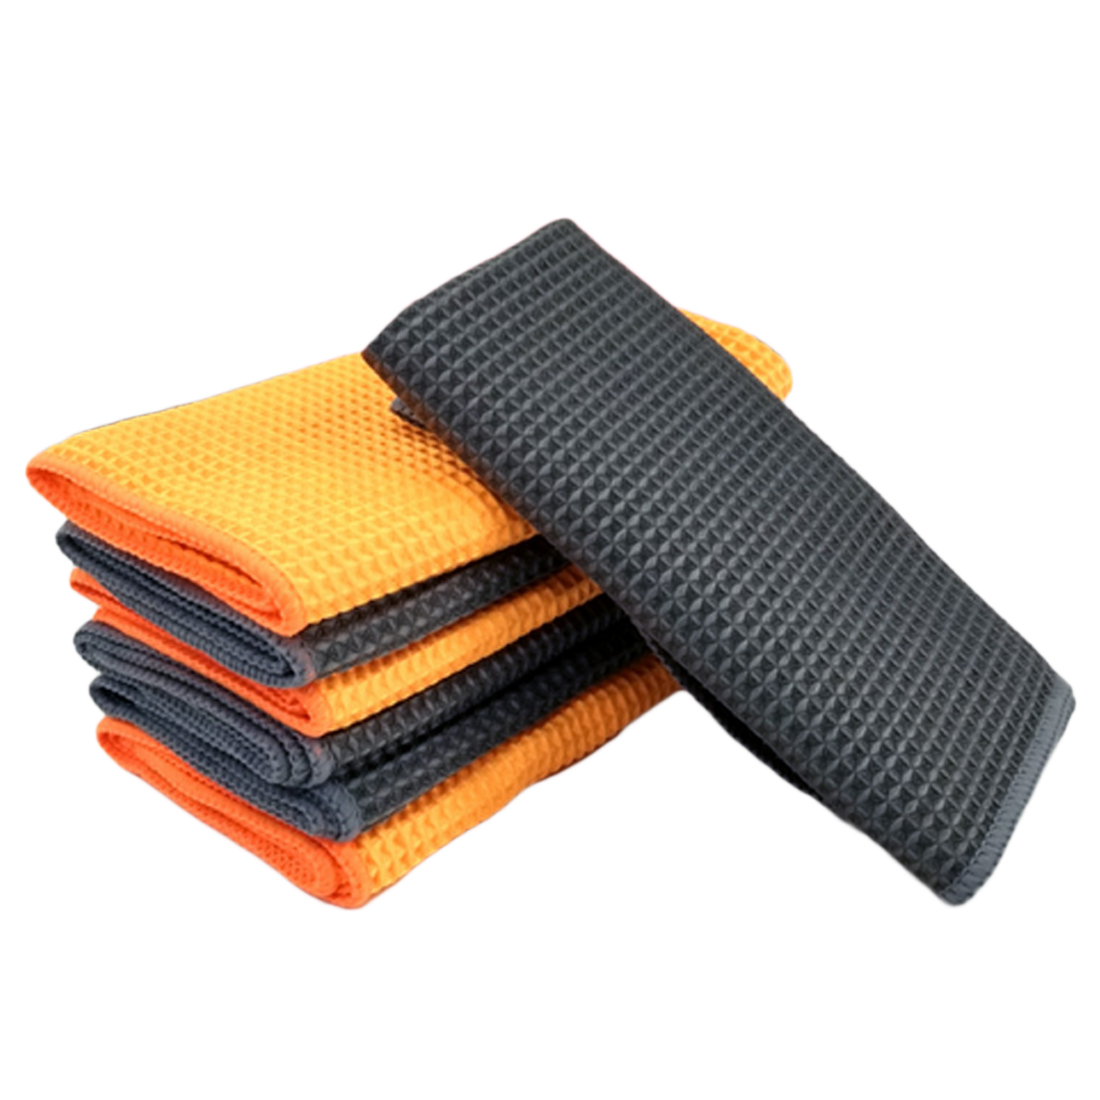 Interior Accessories Car Wash Towel Glass Cleaning Wax Polishing Detailing Waffle Weave Towel Car Cleaning Microfiber Cloth Kitchen Cleaner 40x40cm